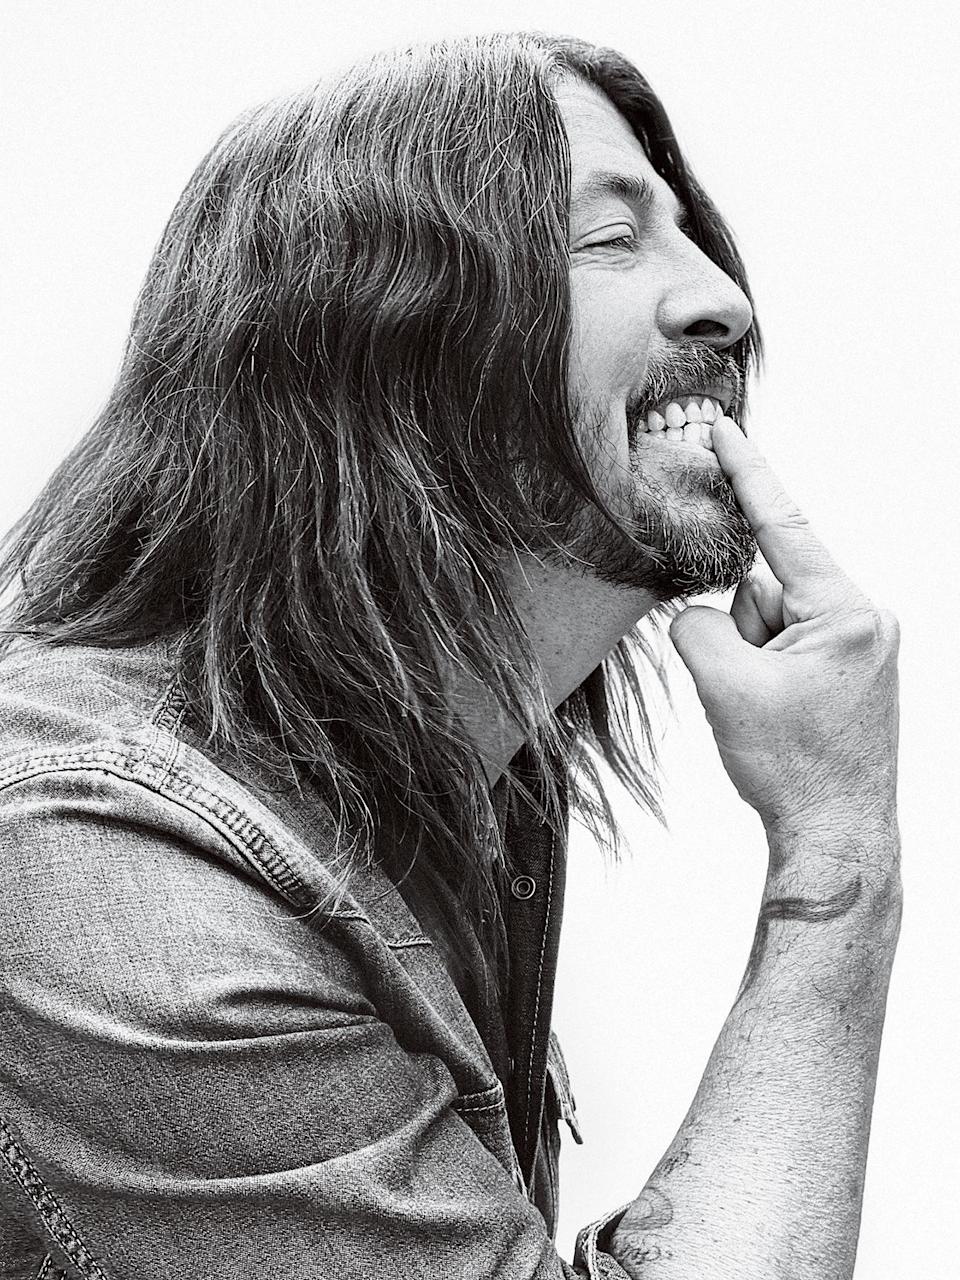 Dave Grohl, photographed in Los Angeles on June 10th, 2021. - Credit: Photograph by Jason Nocito for Rolling Stone